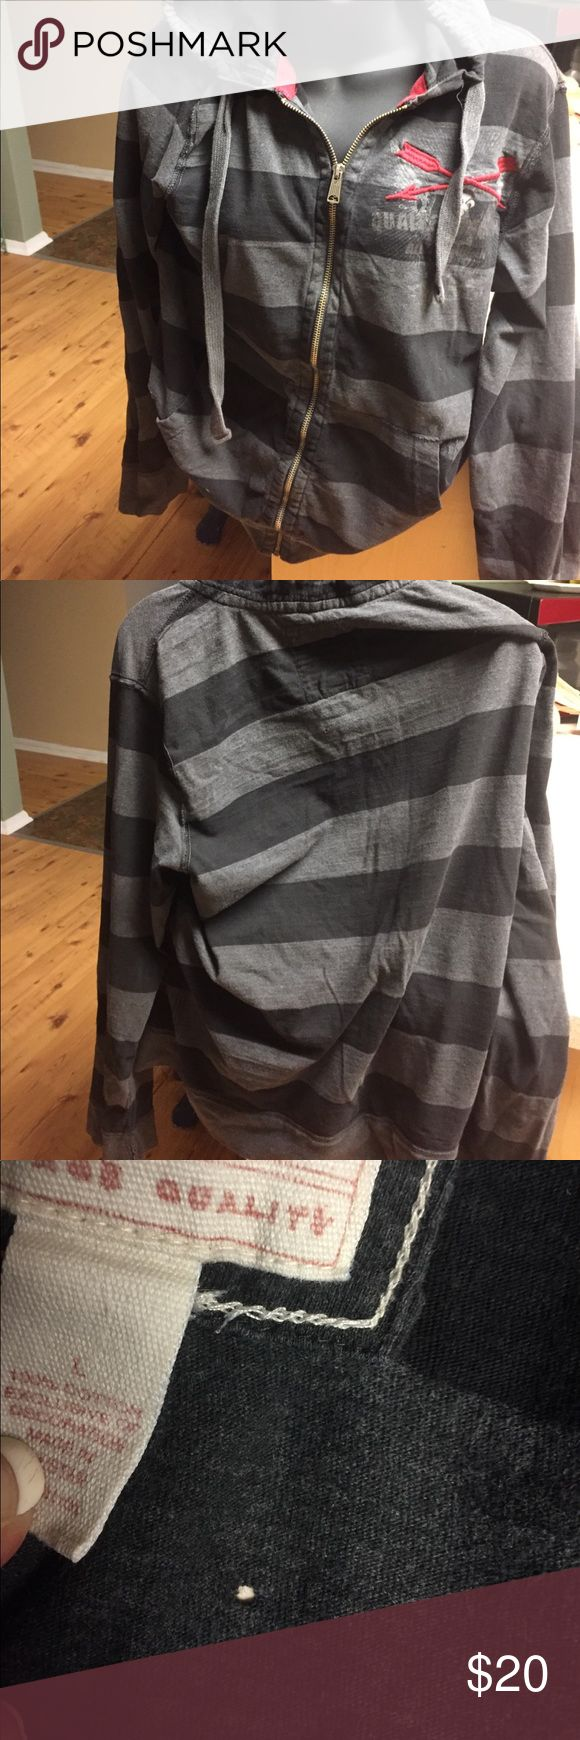 Red Camel men's hoodie Authentic Red  Camel hoodie size large has one tiny hole in back (see picture) black and gray striped Working Zipper good condition except fir one tiny hole 😕 Red Camel Other